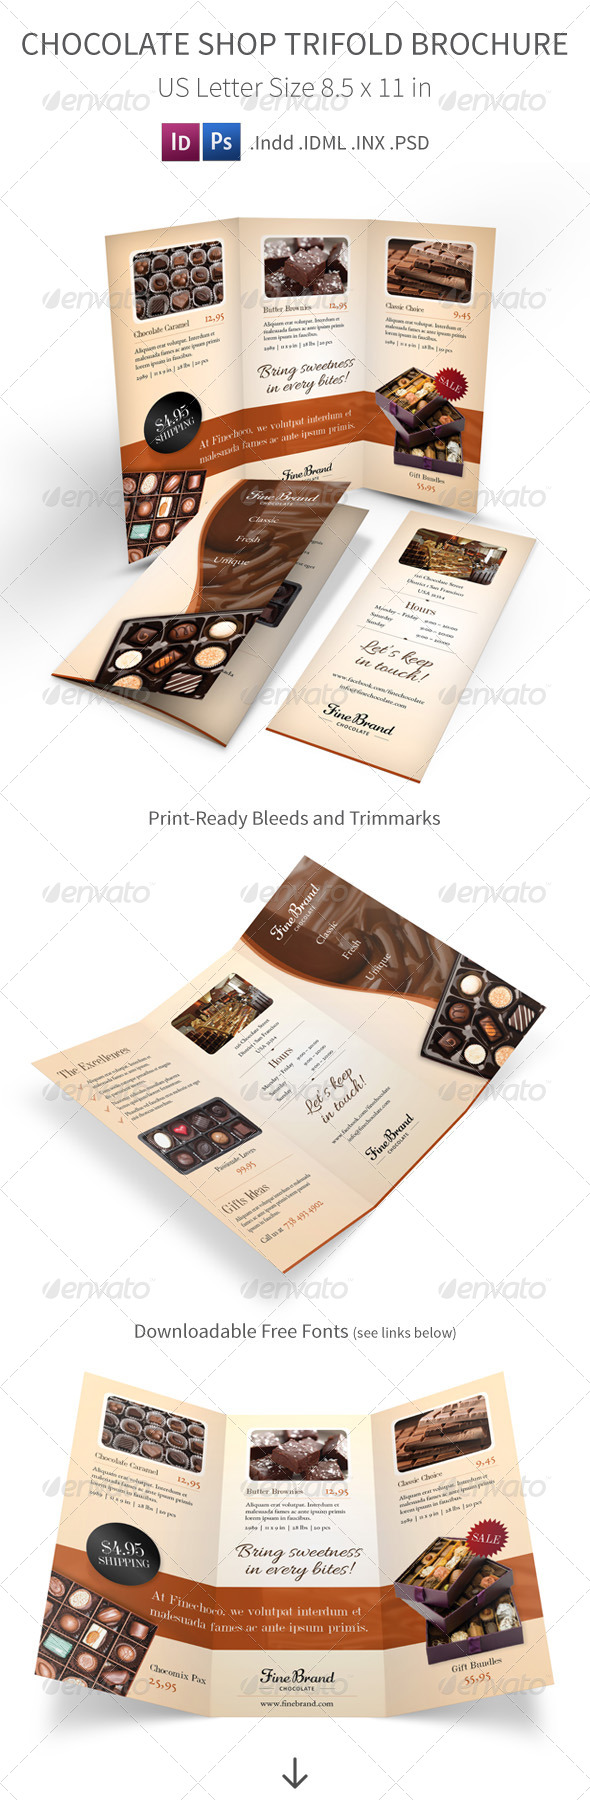 GraphicRiver Chocolate Shop Trifold Brochure 7709277